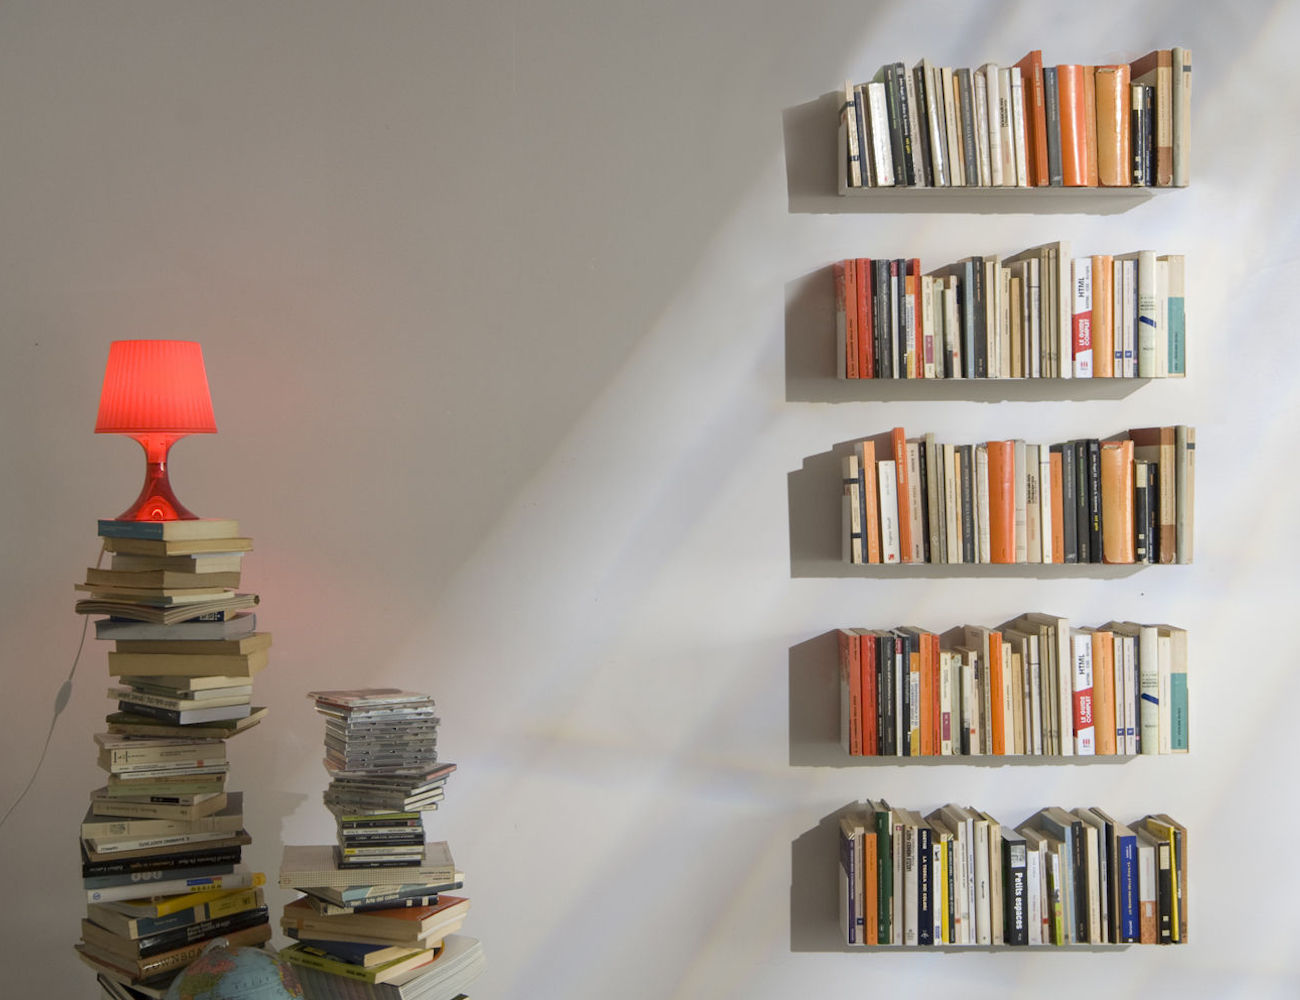 Wall Book Racks Judd Wall Shelves By Teebooks Keep Your Books Suspended